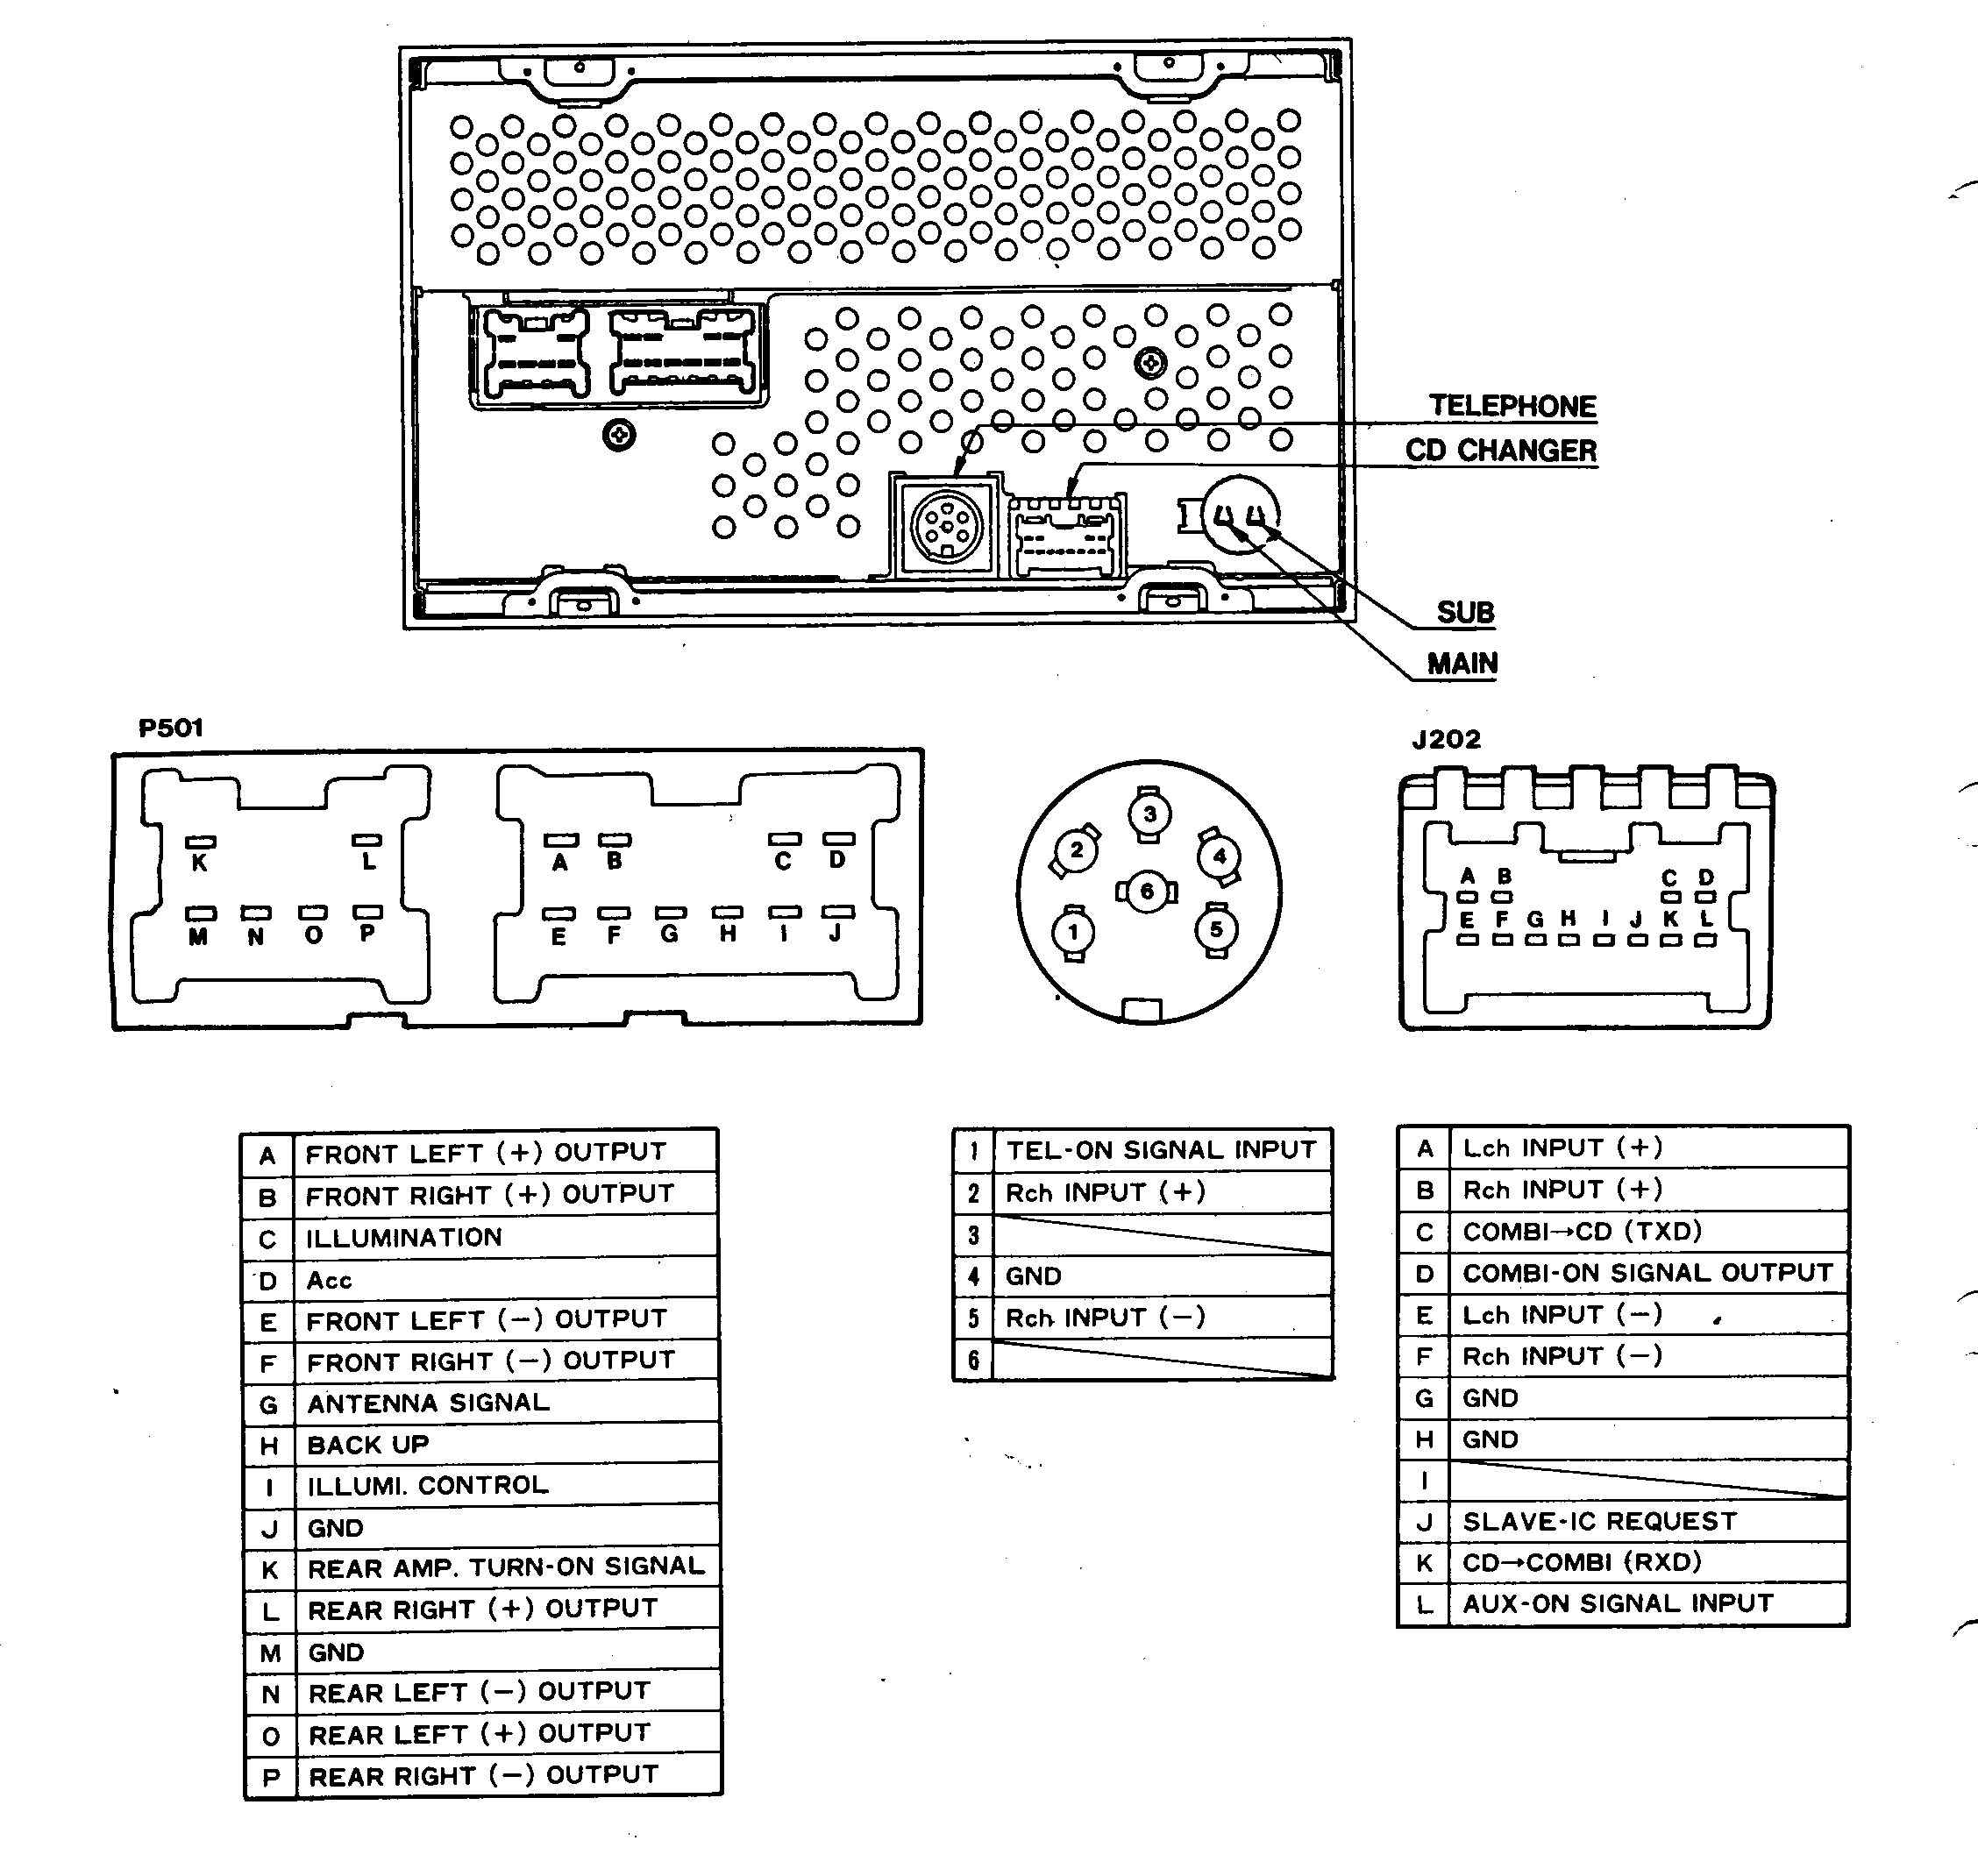 P 0900c15280089c9f as well 2007 Nissan Altima Fuse Box 2010 Nissan Altima Fuse Box Diagram Pertaining To 1998 Nissan Altima Fuse Box Diagram further Ford 4 2l V6 Engine Diagram moreover Jeep Tj Dash Wiring Diagram Diagrams Instruction 2000 Cherokee 2008 likewise Honda Civic Fuse Box Diagrams 374430. on fuse box diagram 1994 acura